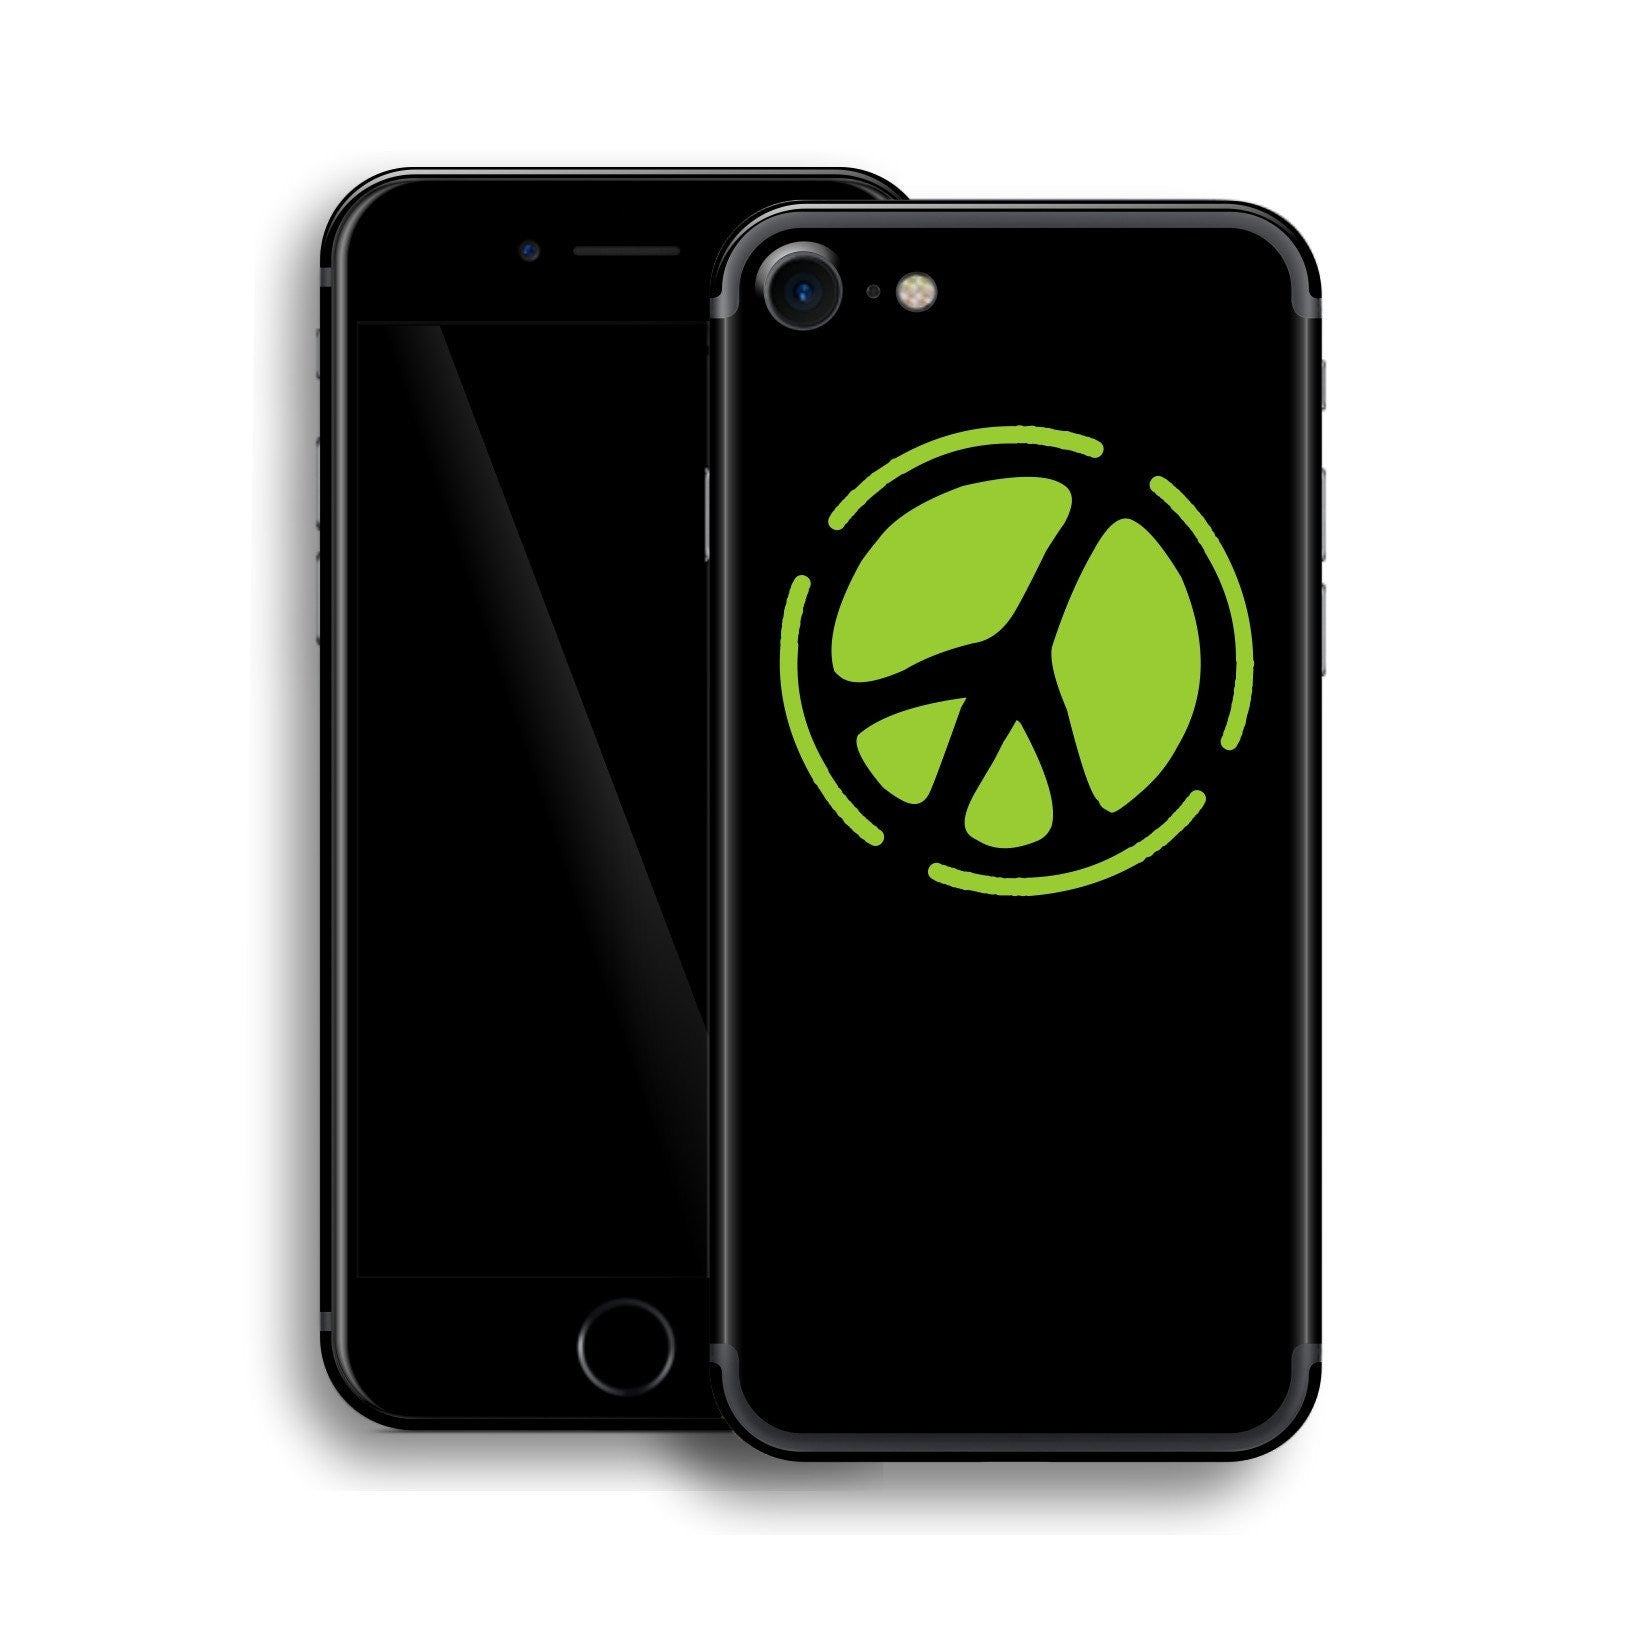 iPhone 7 PEACE Sign Custom Design Skin, Wrap, Decal, Protector, Cover by EasySkinz | EasySkinz.com